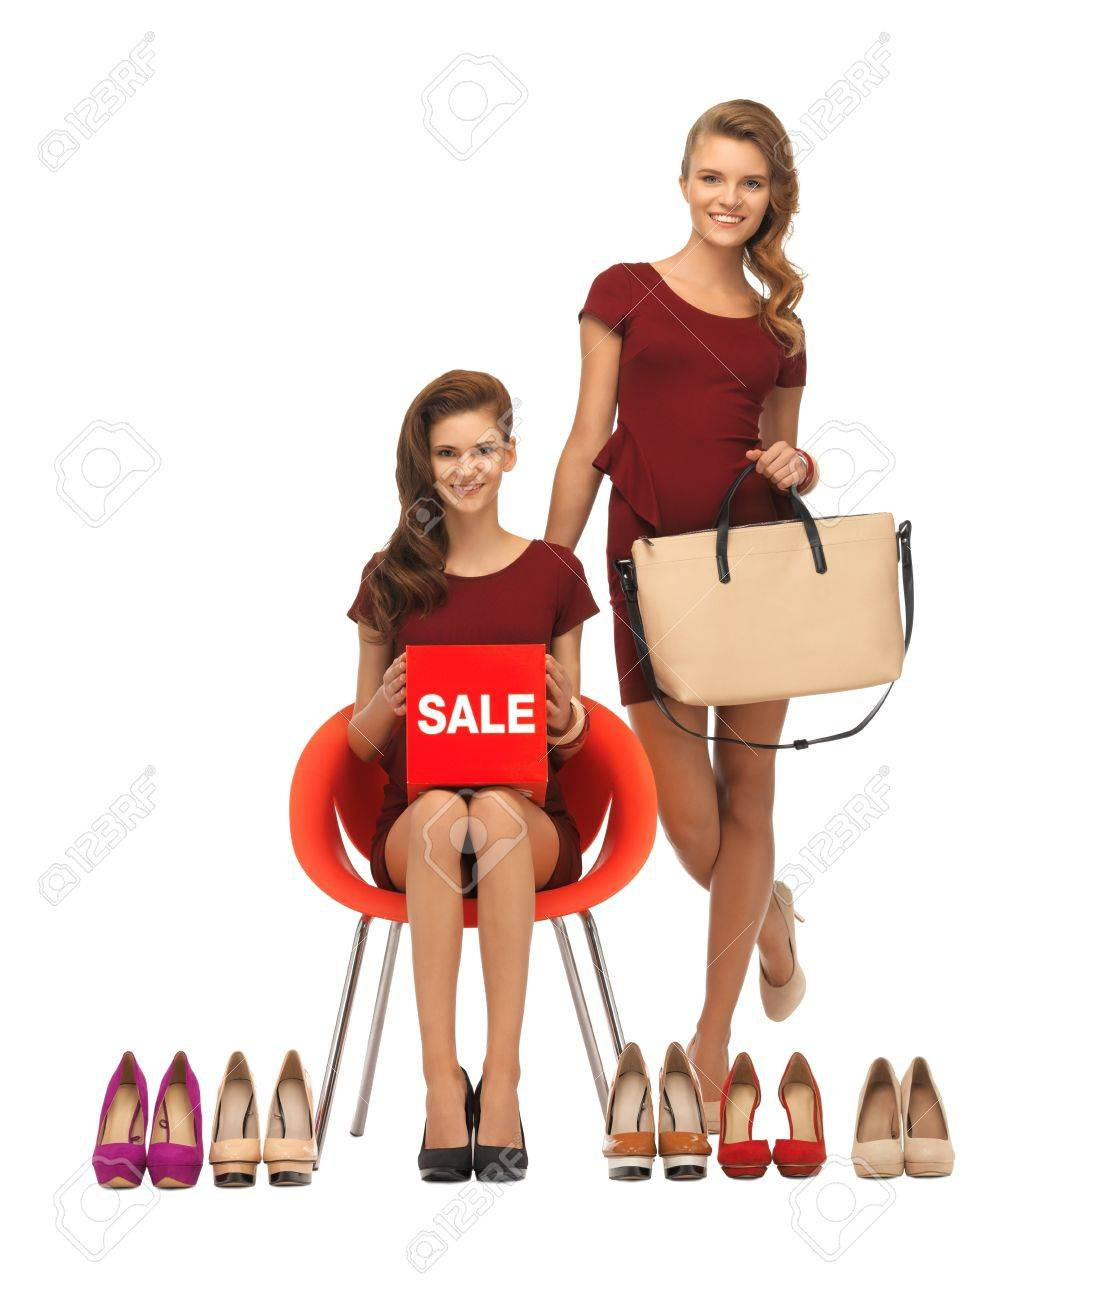 picture of teenage girls in red dresses with shoes, bag and sale sign Stock Photo - 16734232